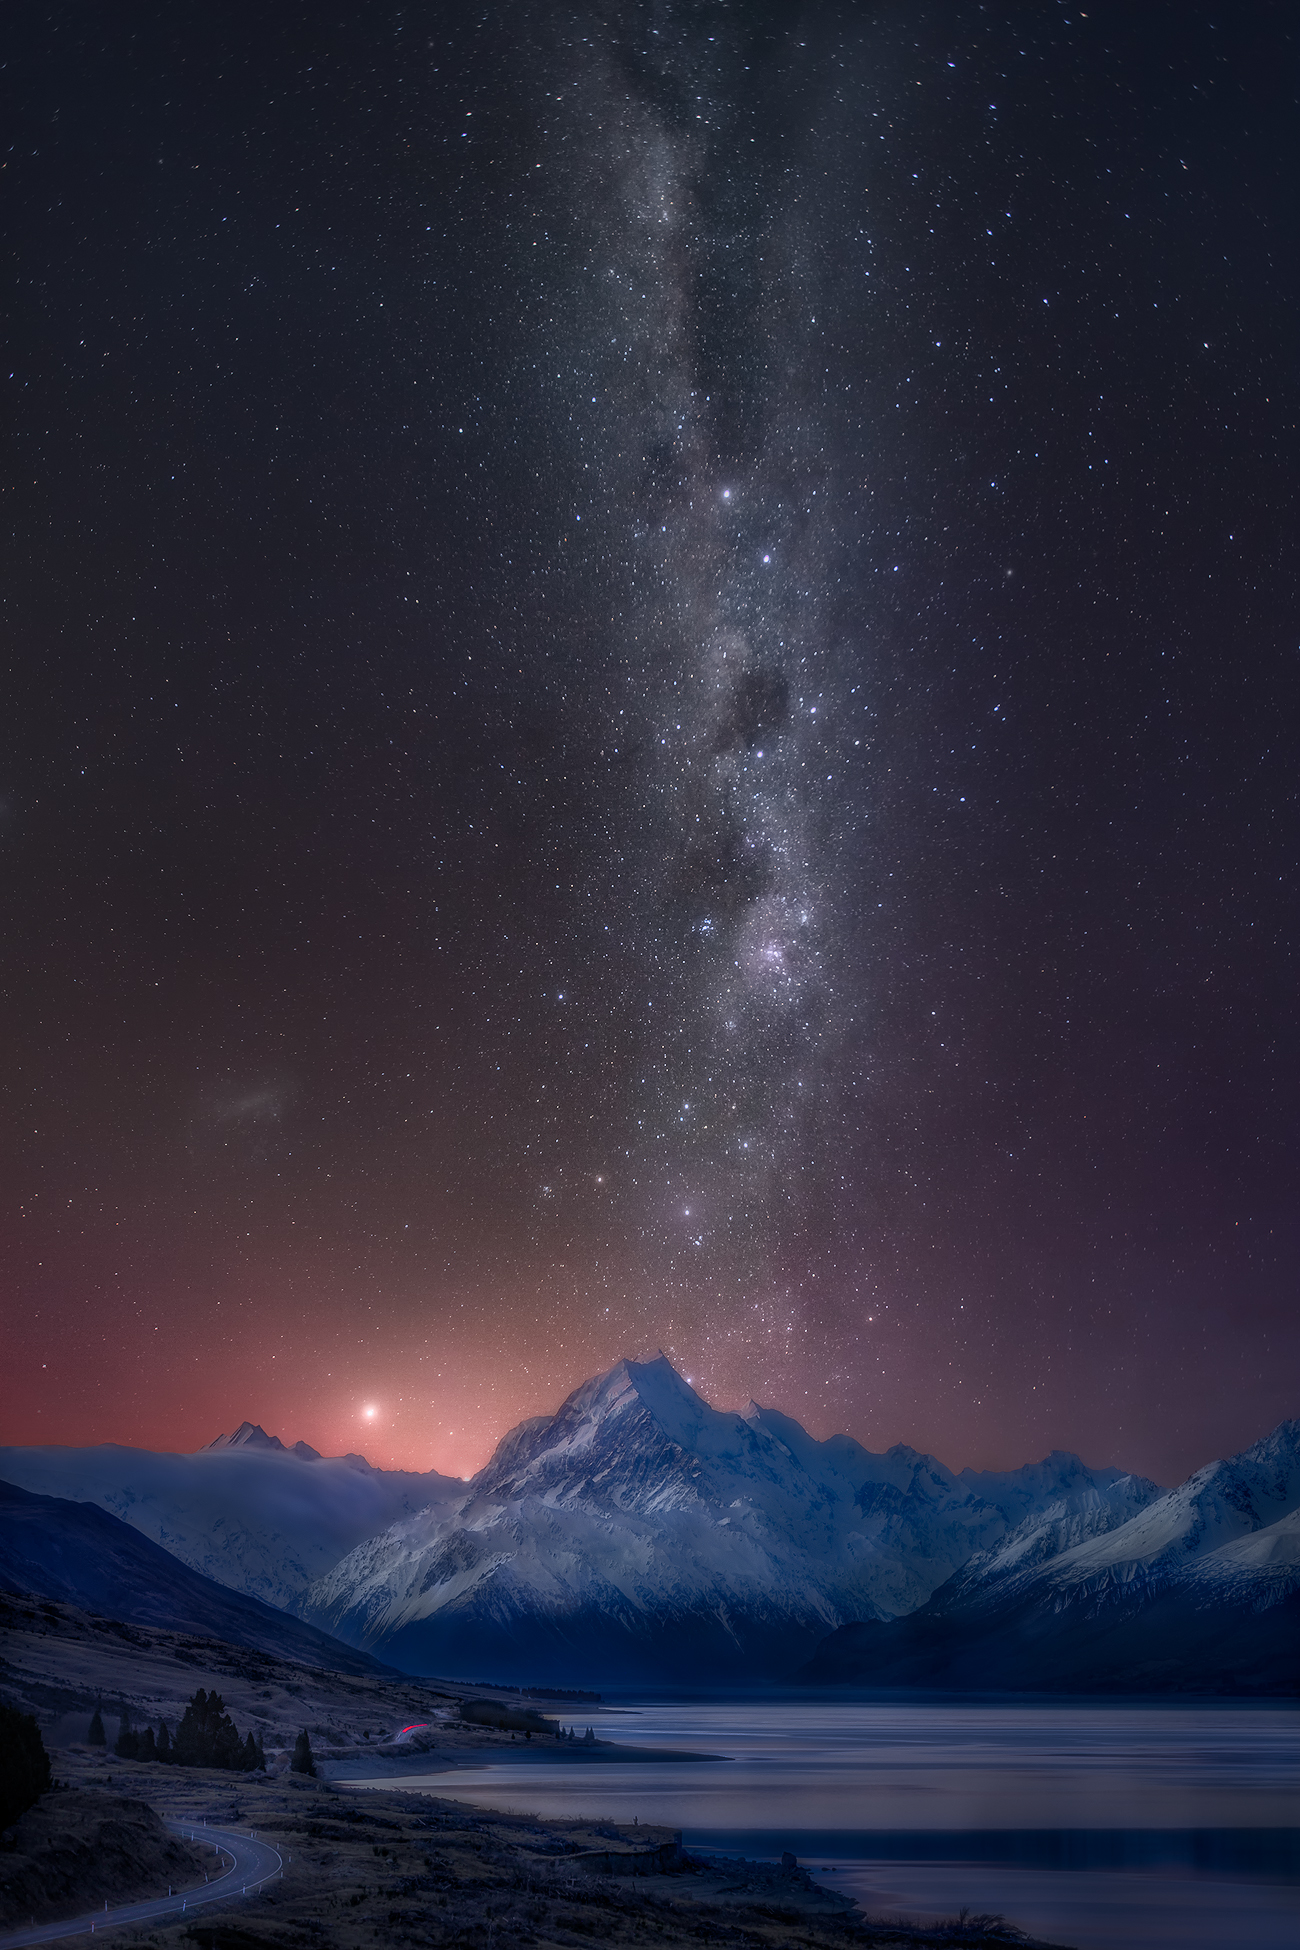 Milky-Way New Zealand 6 day roadtrip - Aoraki Mount Cook National Park at Night | Holiday with We Are Raw Photography Tours